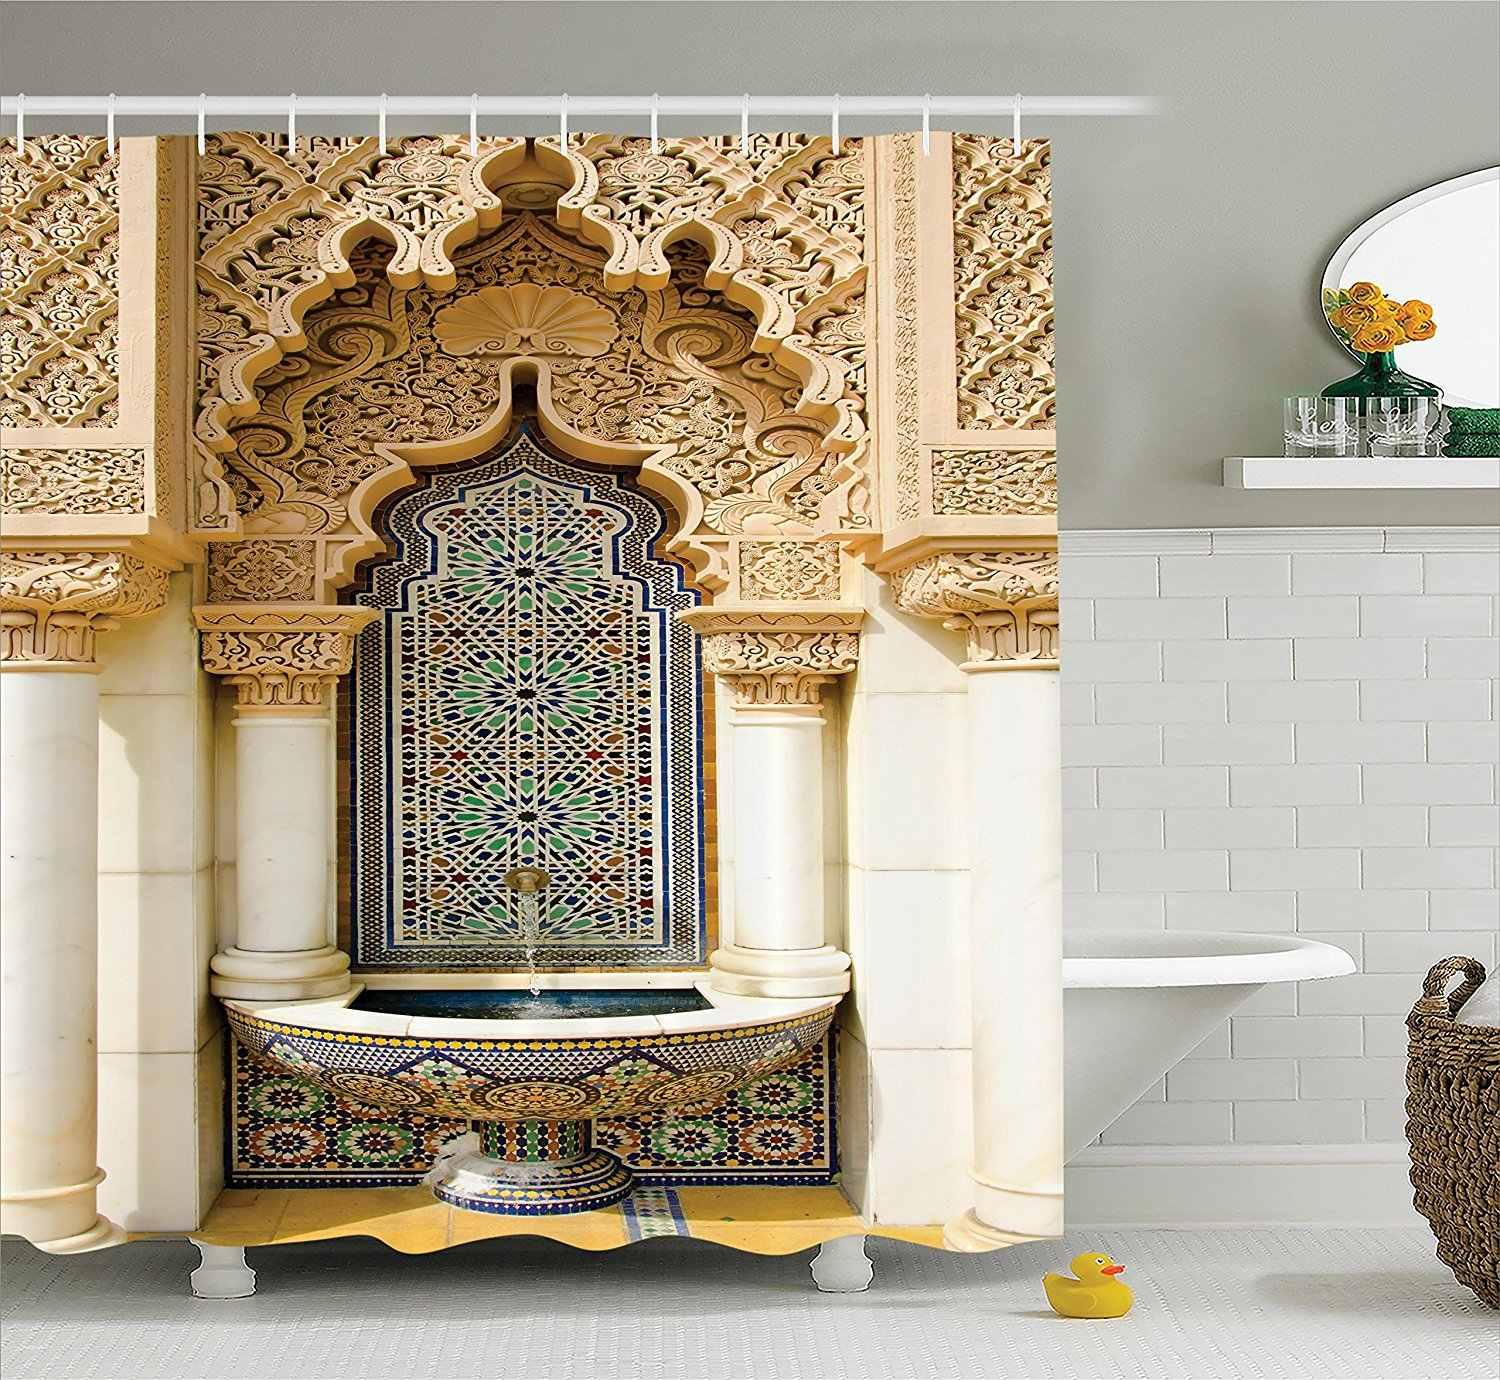 Moroccan Decor Shower Curtain Vintage Building Design Polyester Fabric Bathroom Shower Curtain Set with Hooks